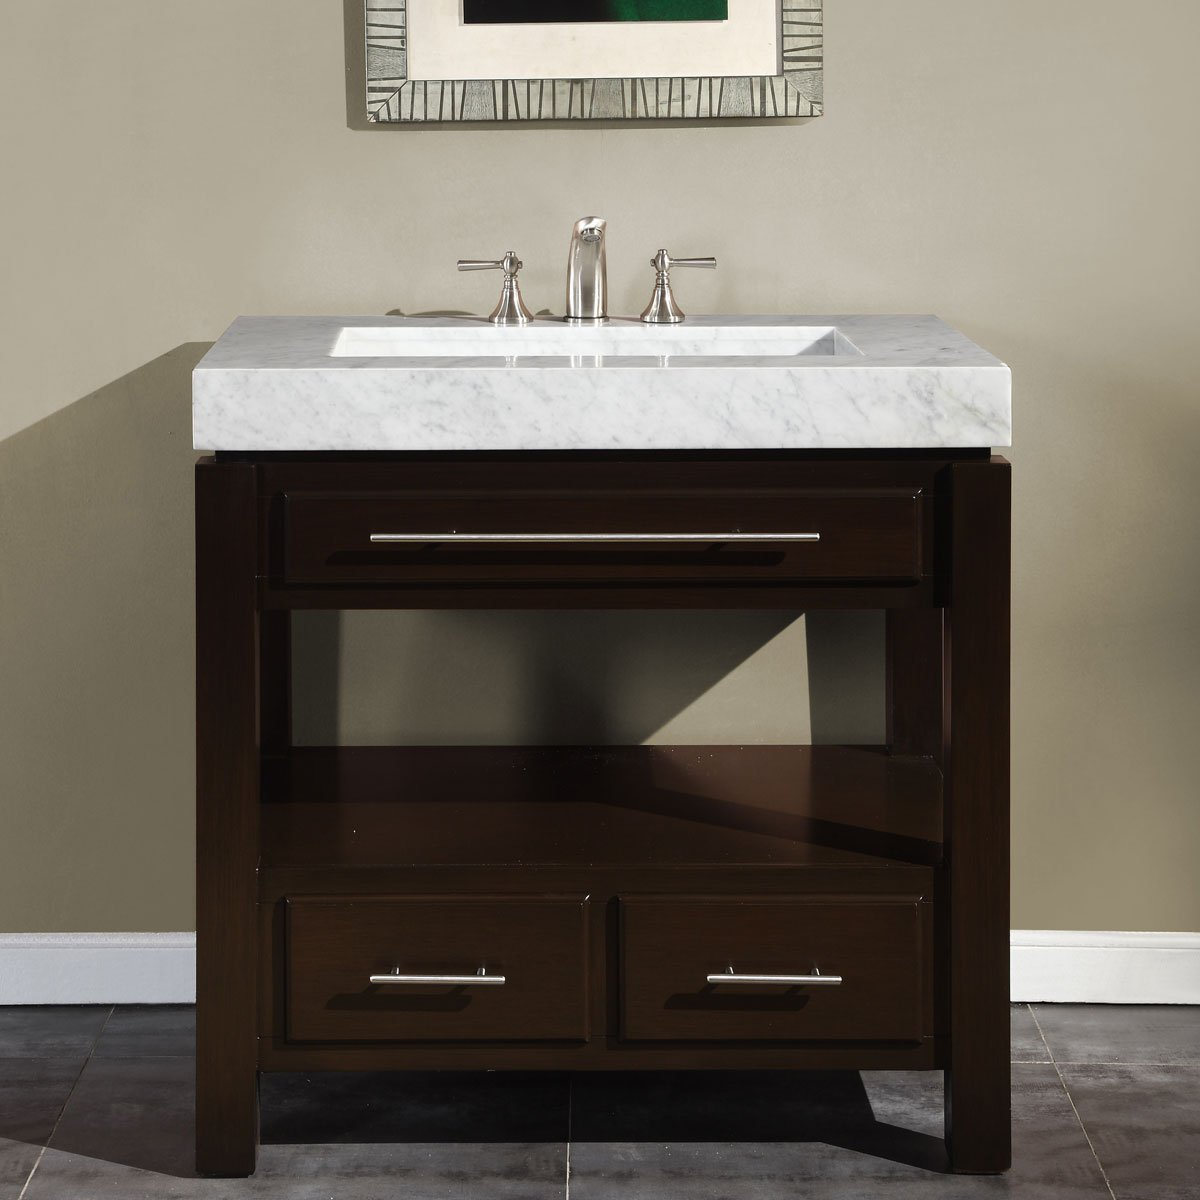 Amazon.com: Silkroad Exclusive Dark Walnut Marble Stone Top Sink Cabinet Bathroom  Vanity, 36 Inch: Home U0026 Kitchen